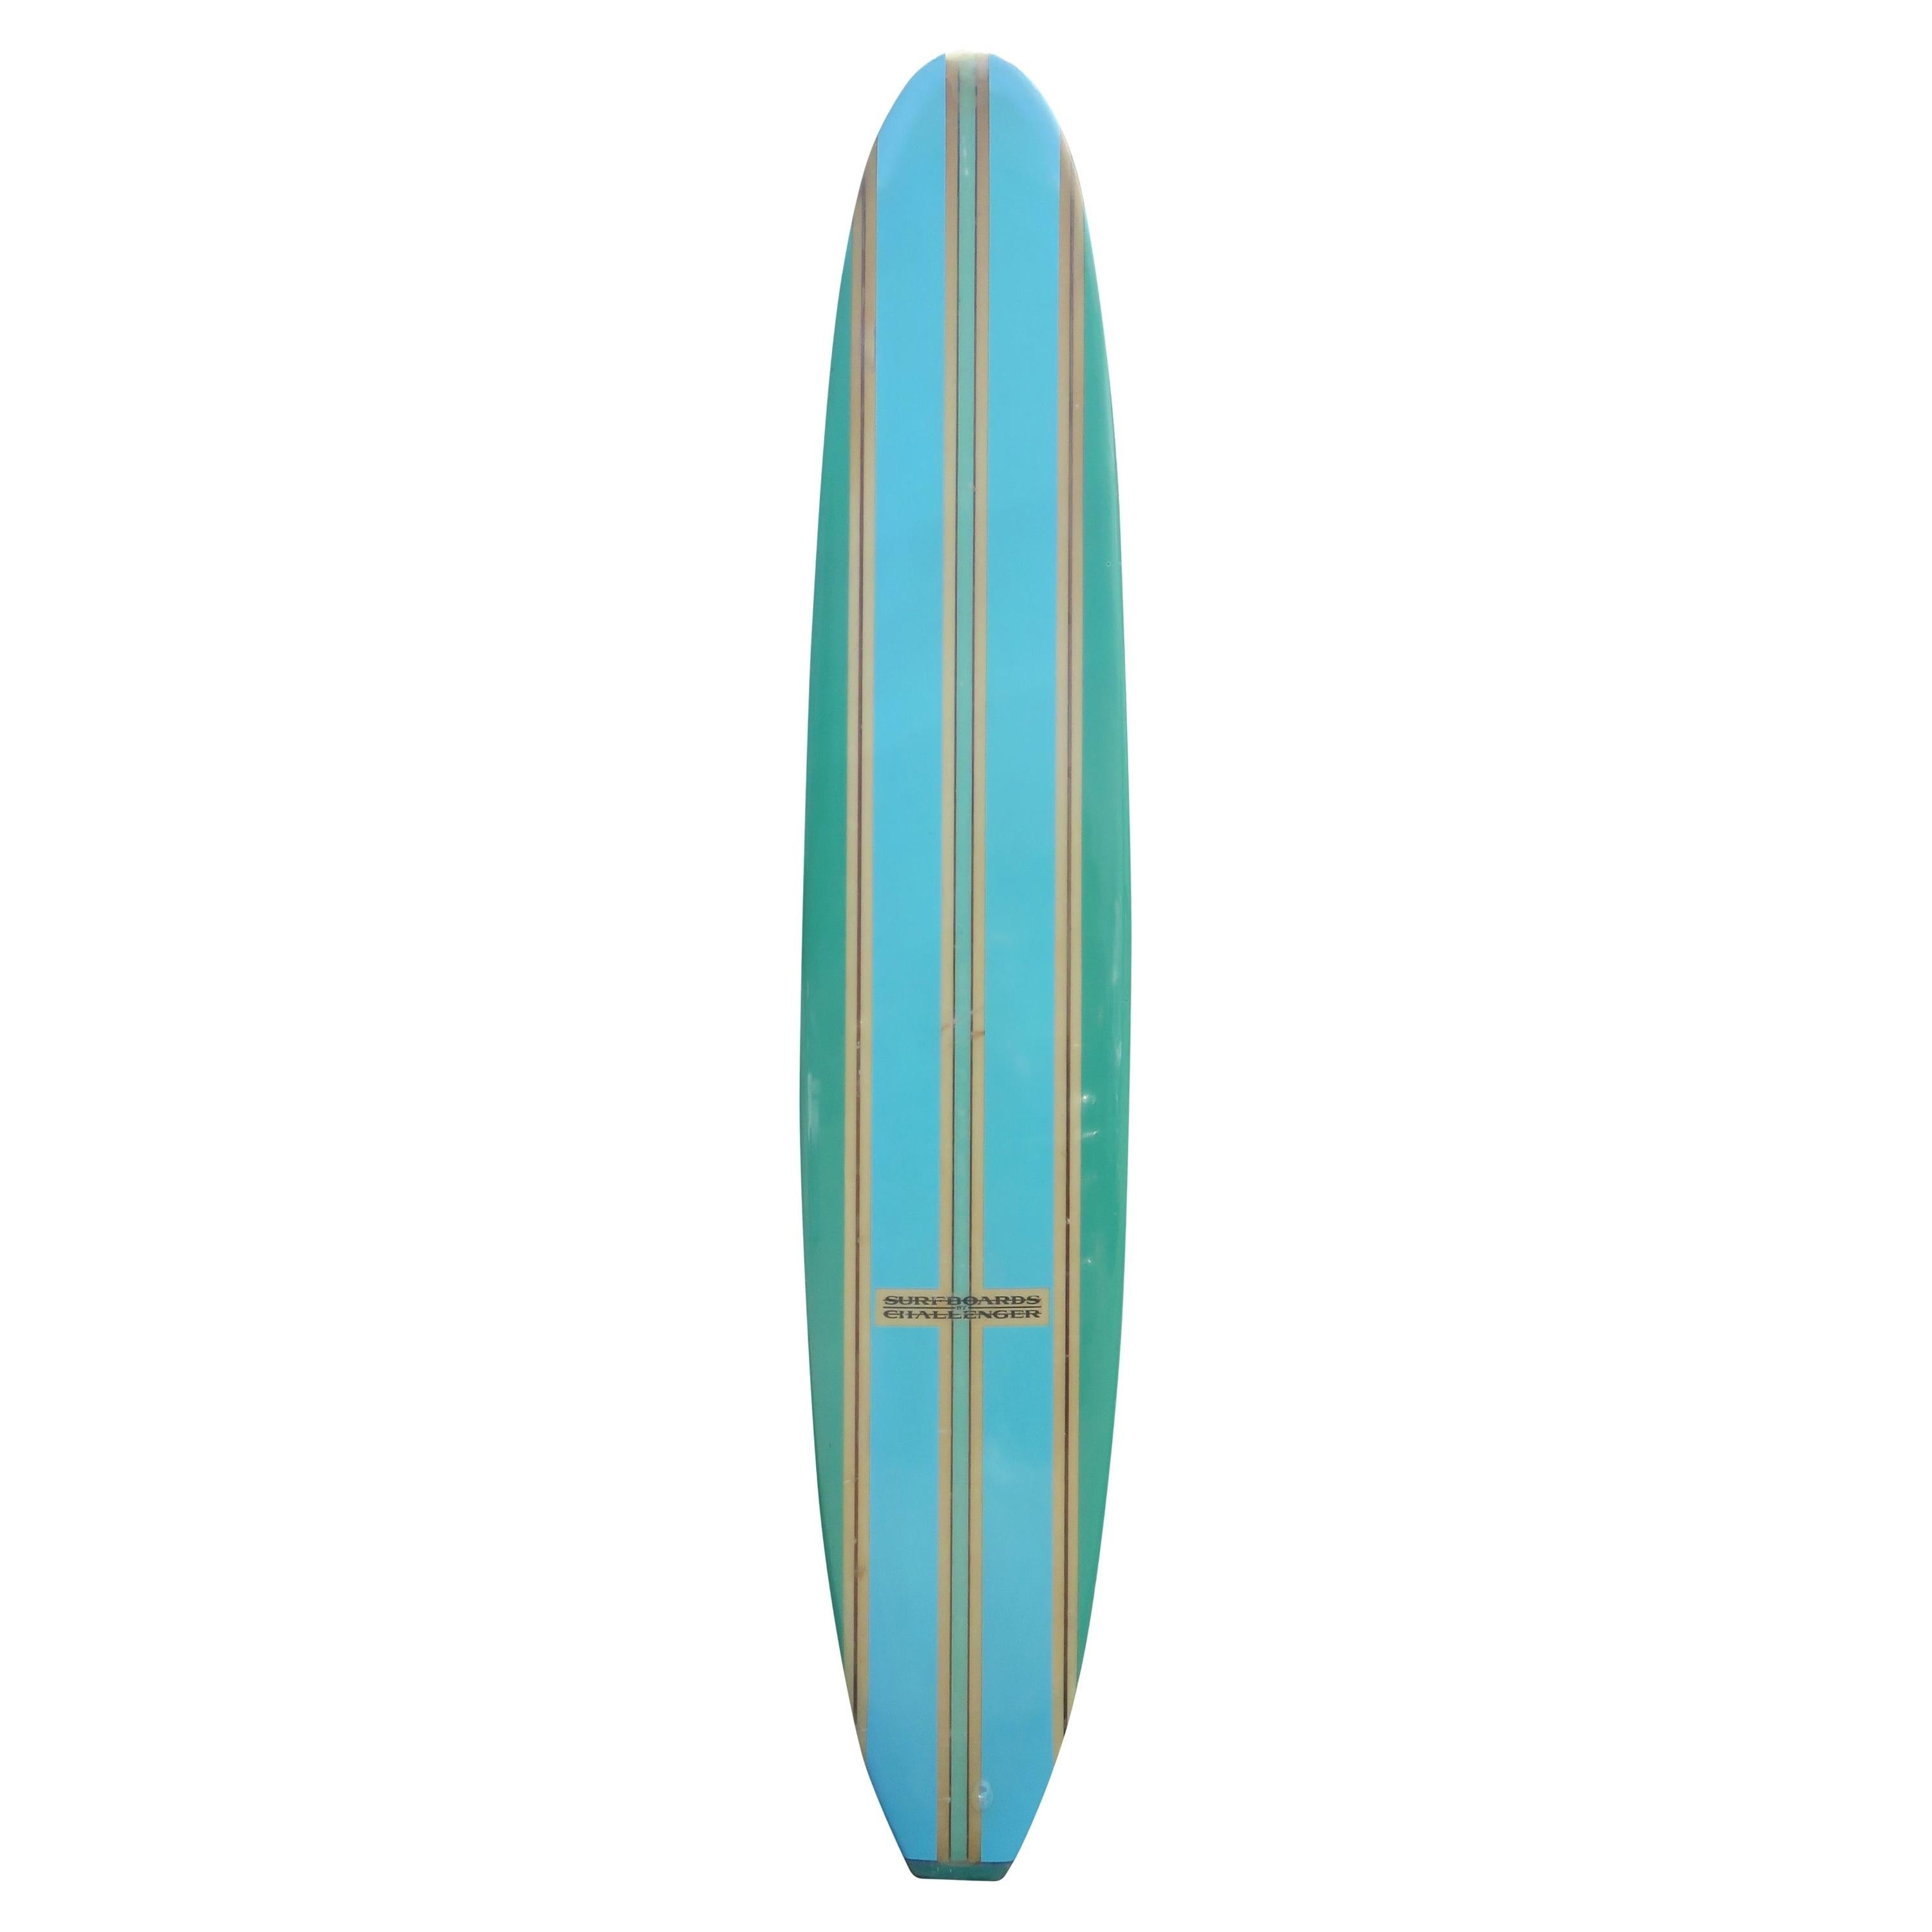 1960s Vintage Surfboards by Challenger longboard